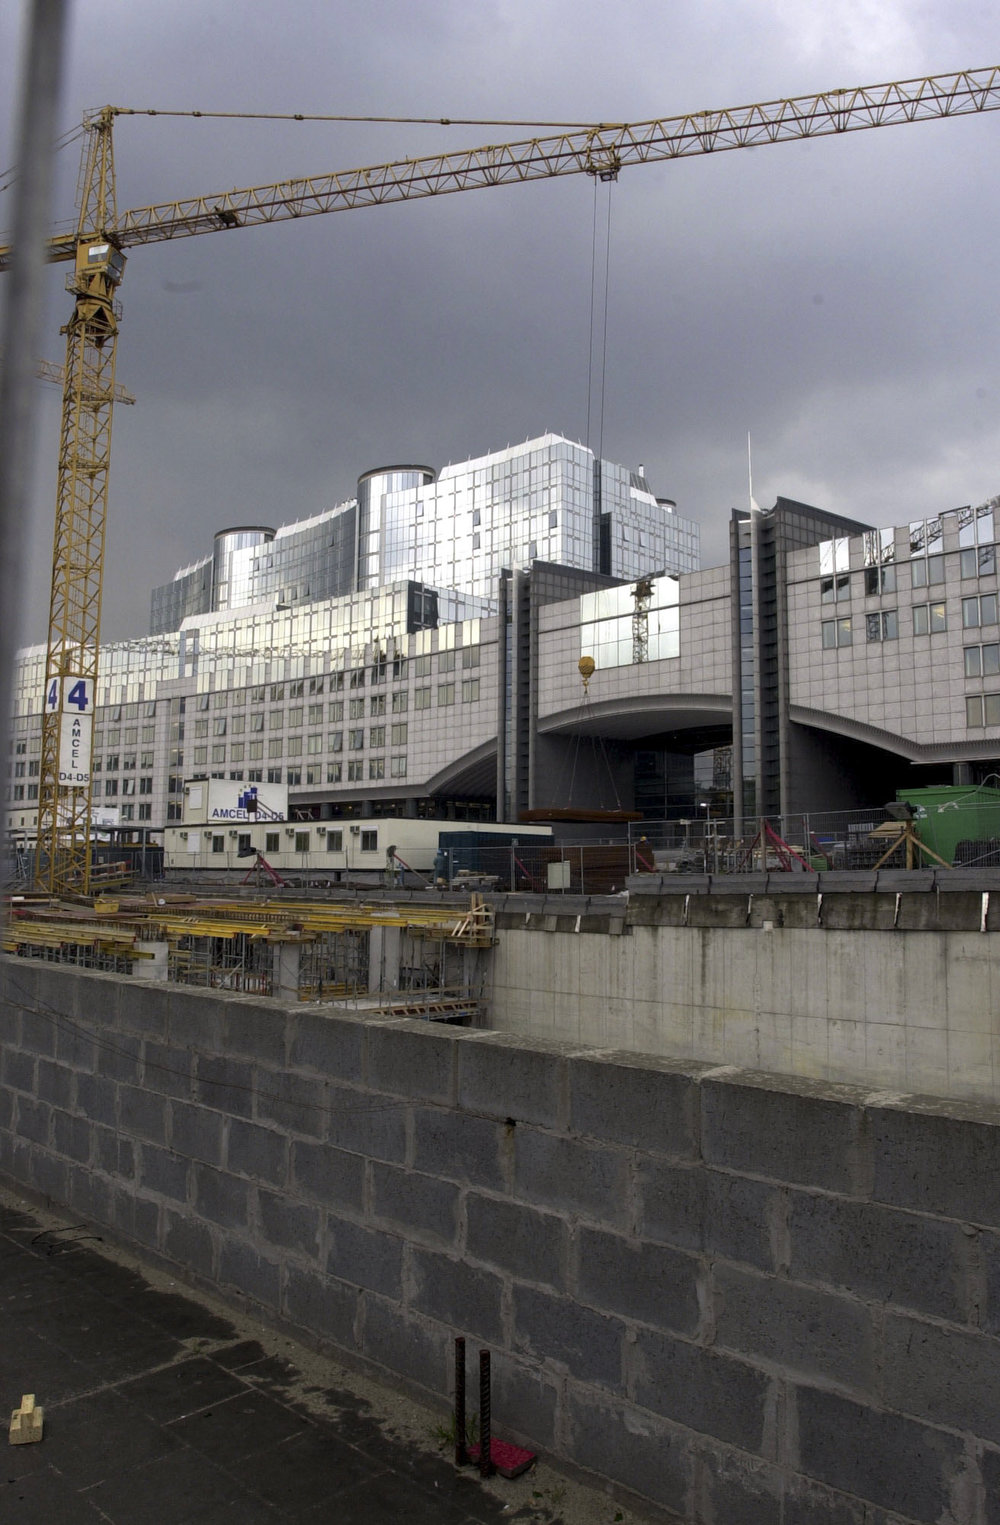 Building_site_at_the_European_Parliament_in_Brussels_Luxembourg_station_and_JAN_Building_1937 X 2953 Inch_11.jpg